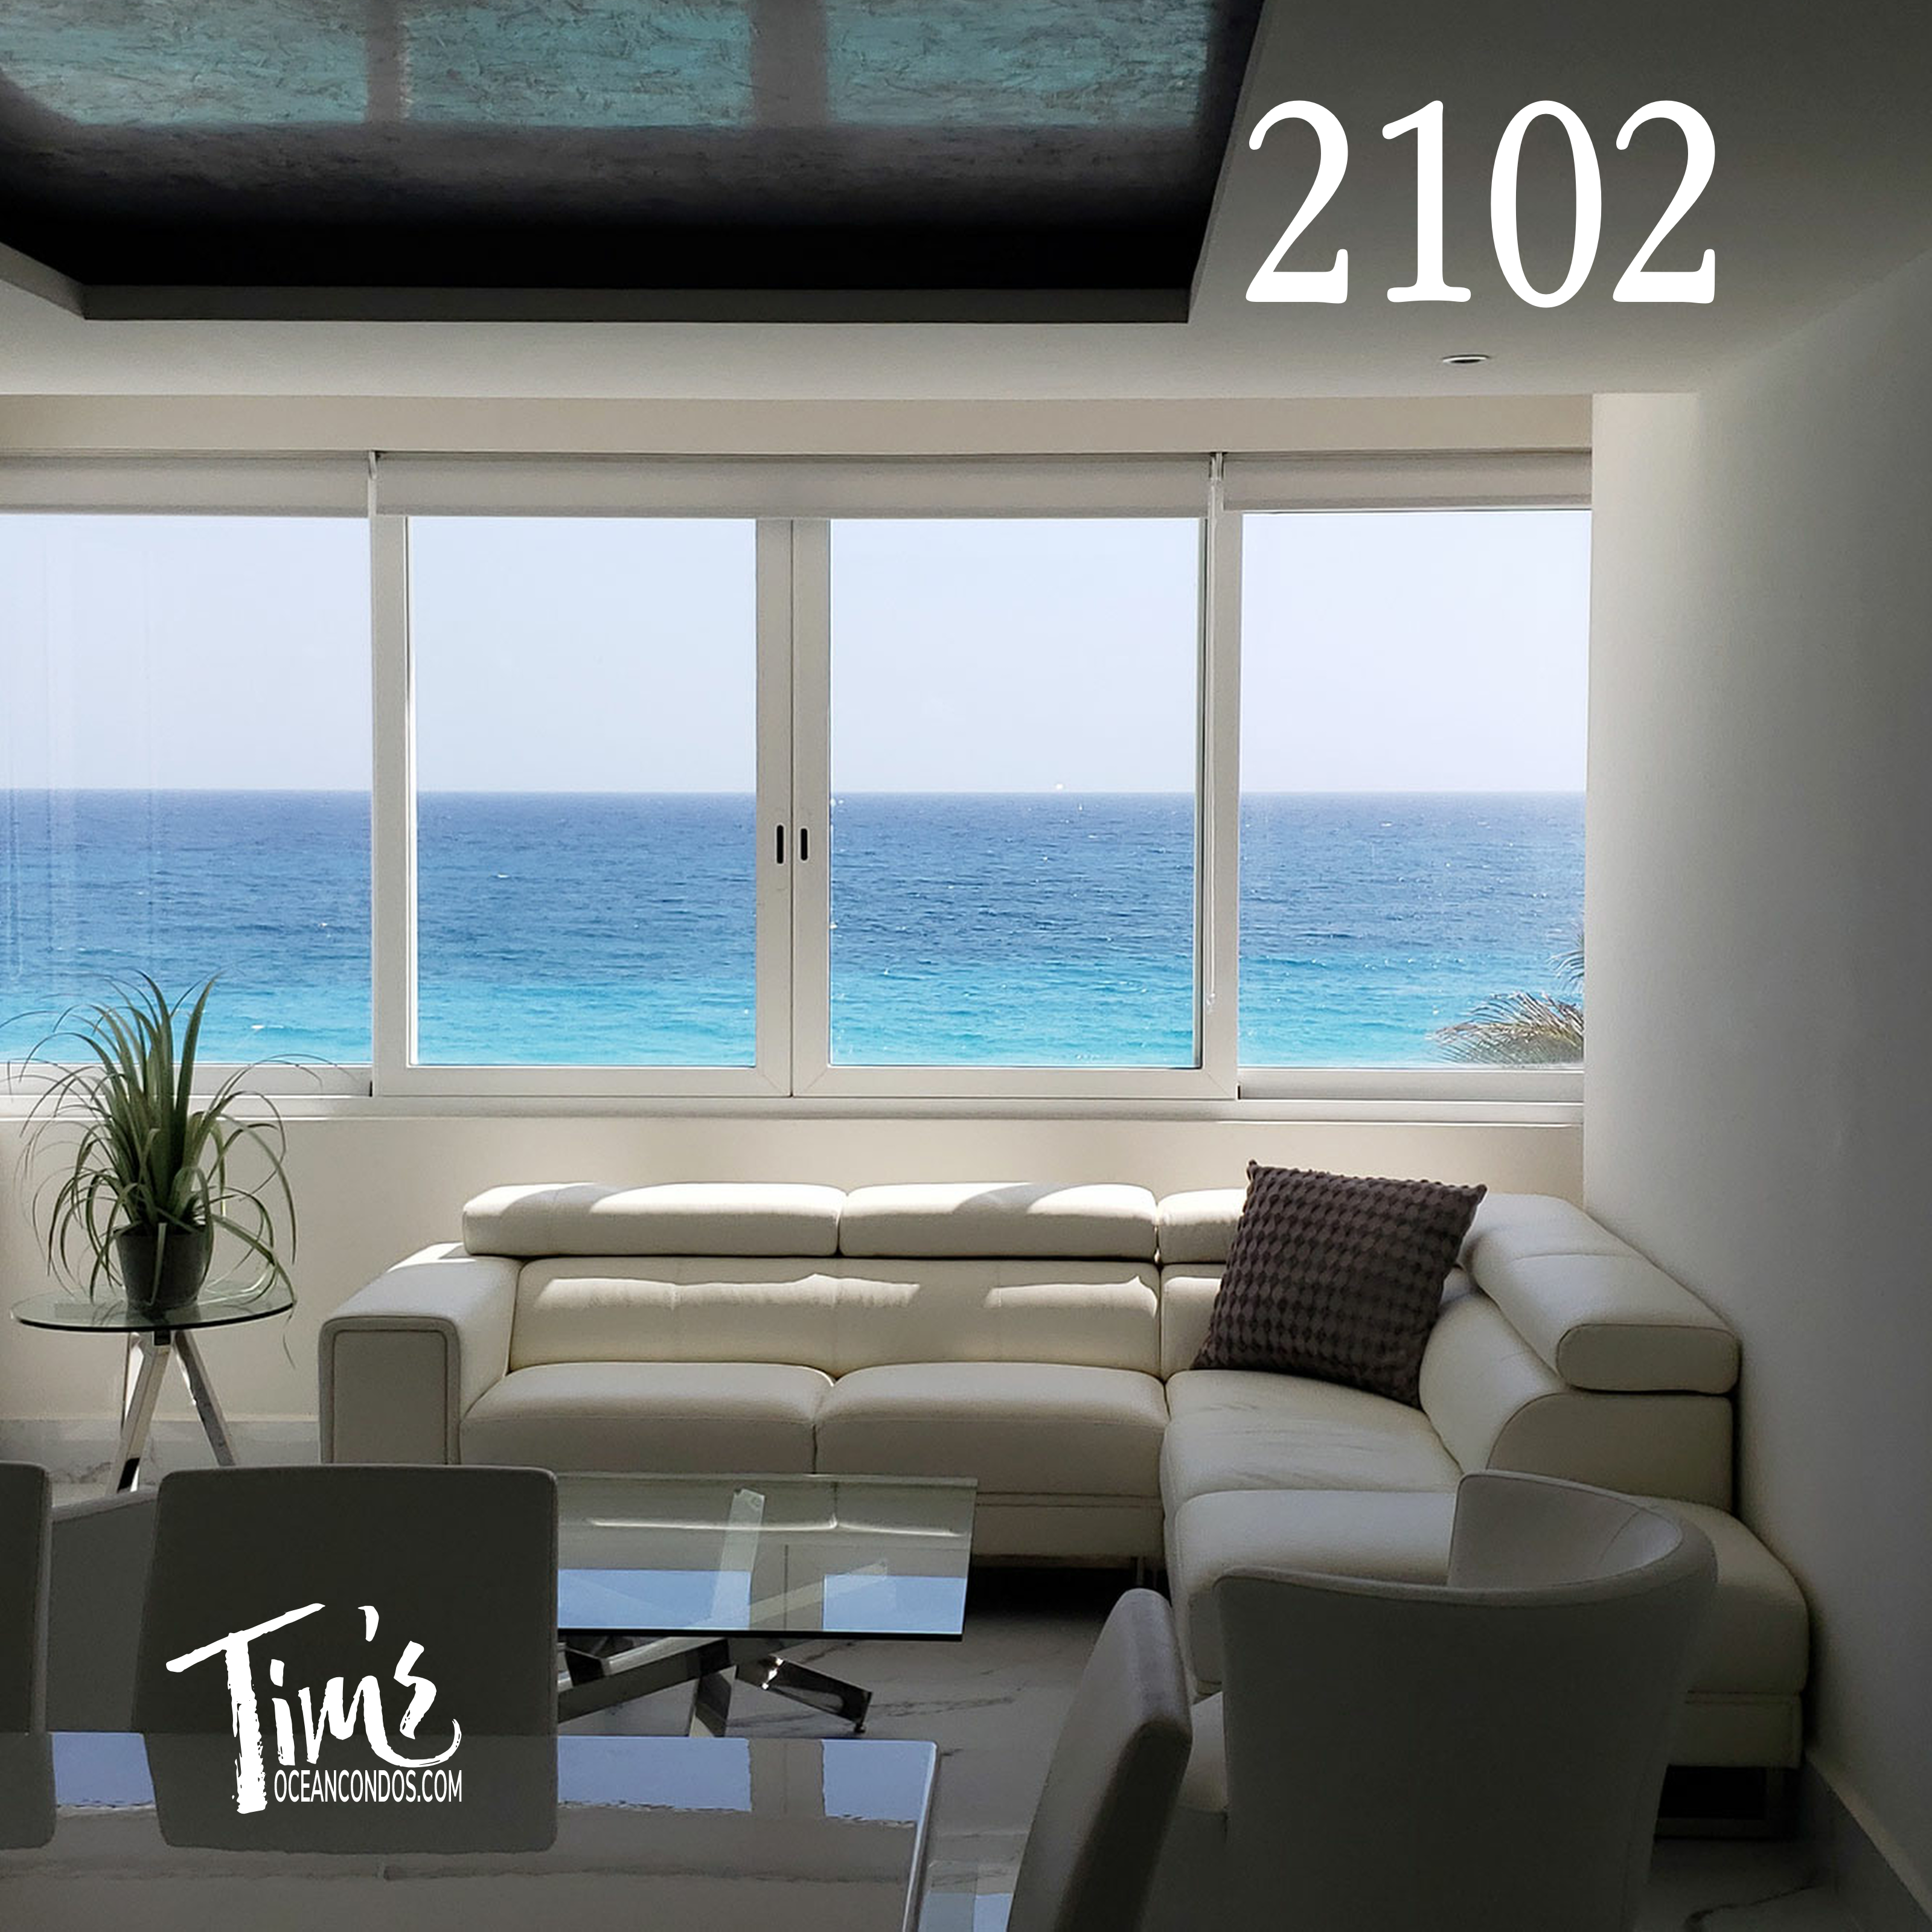 new Cancun vacation rental 2102